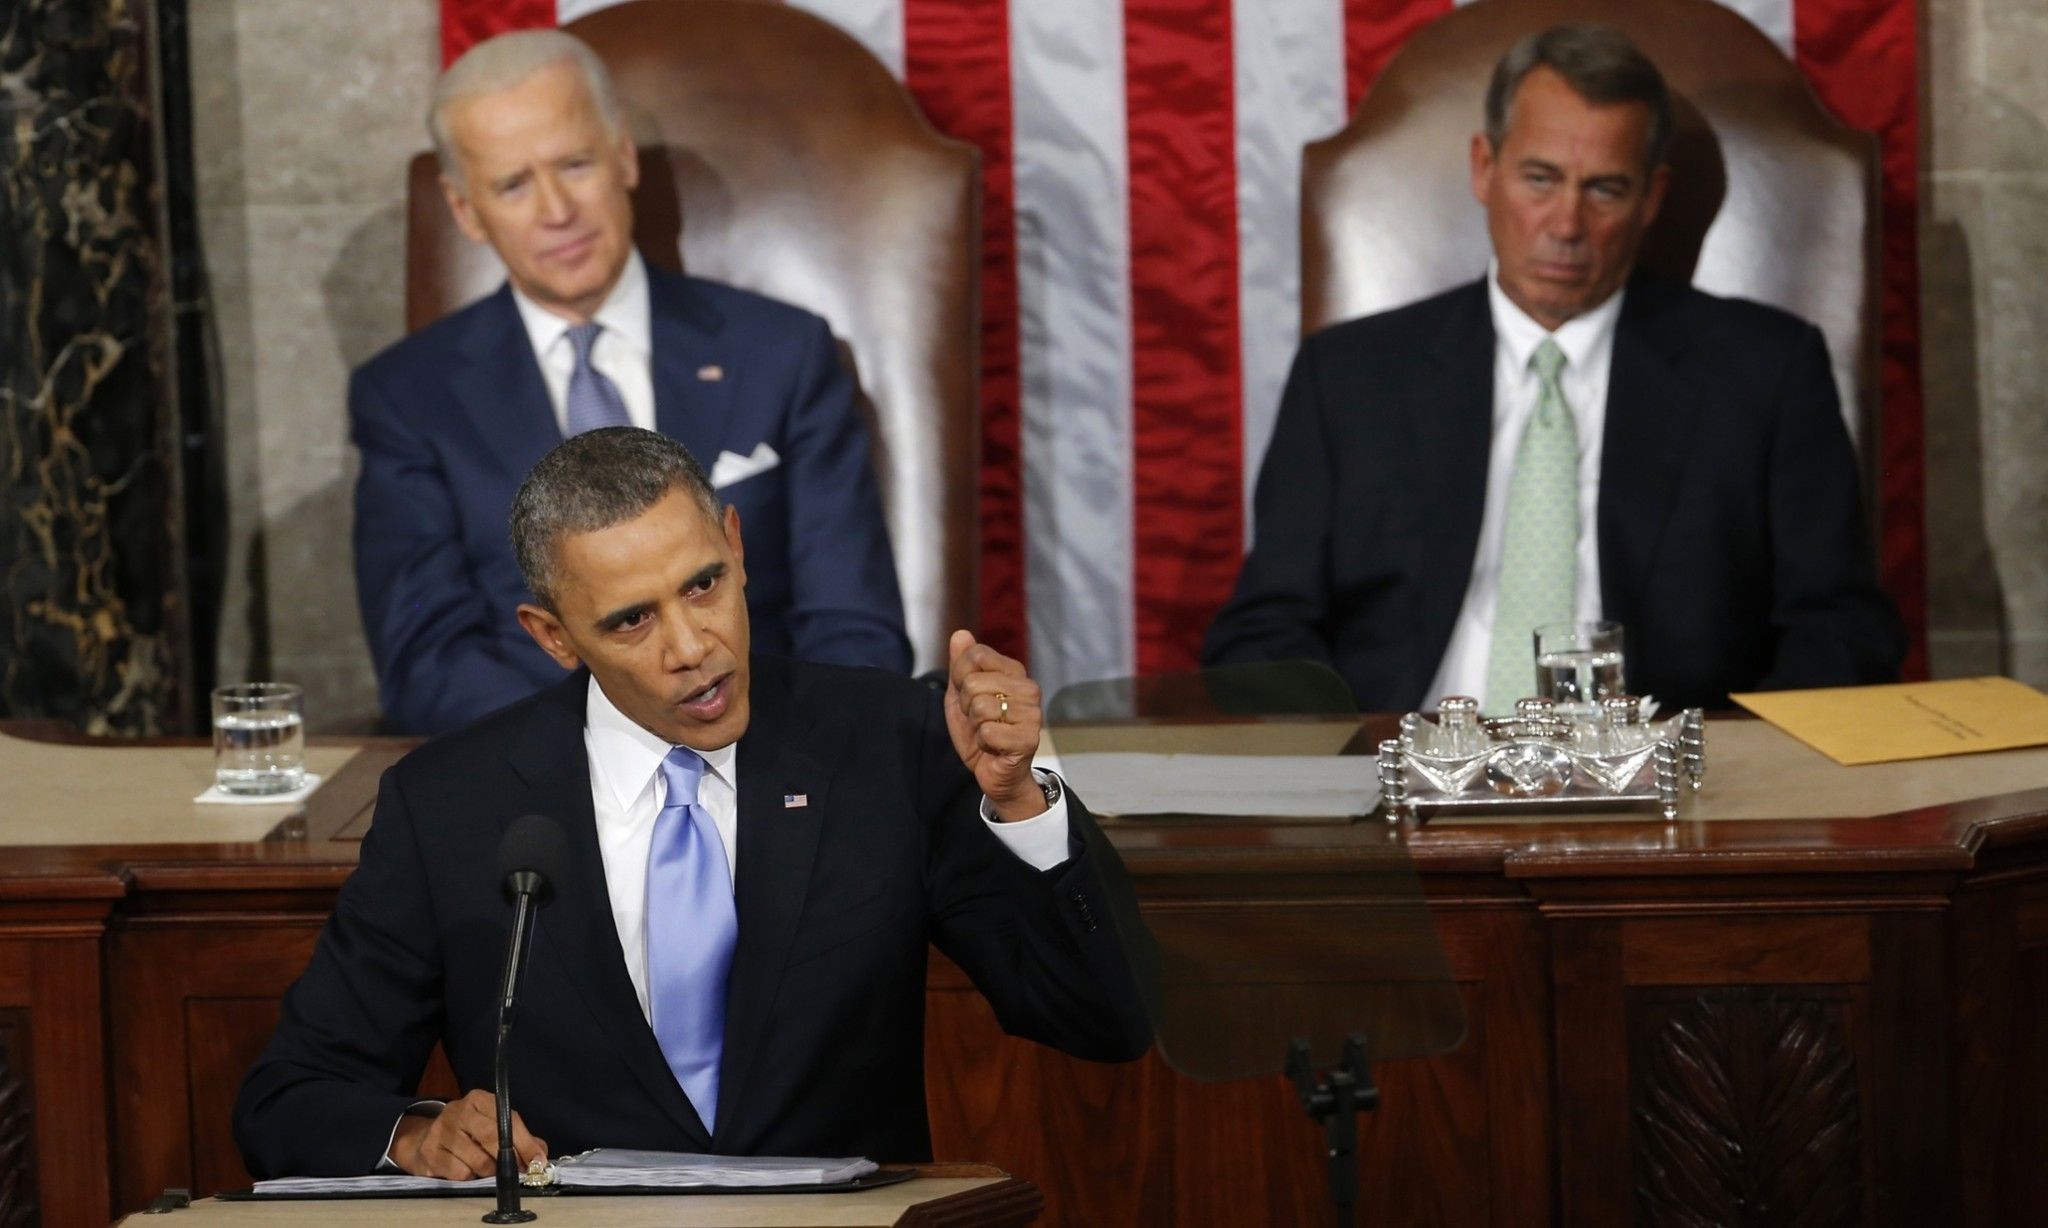 Obama to propose $325bn plan to provide tax cuts for the middle class